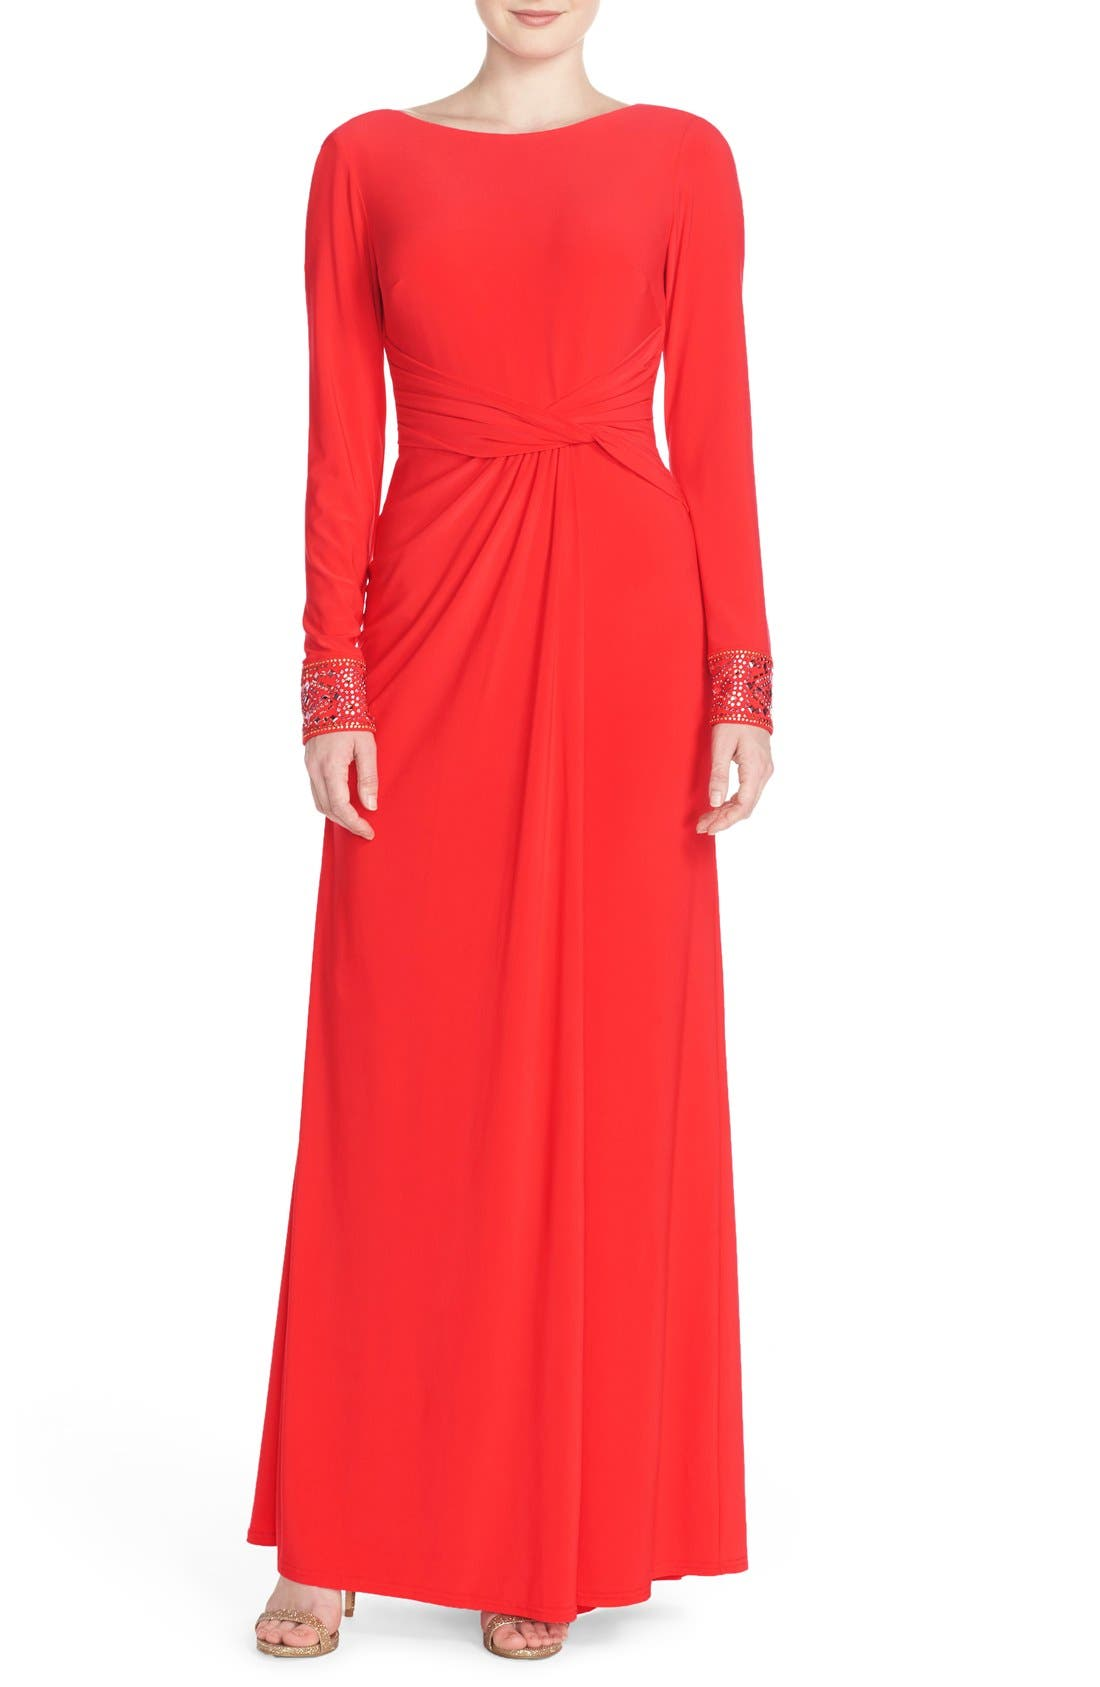 Alternate Image 1 Selected - Vince Camuto Studded Jersey Fit & Flare Gown